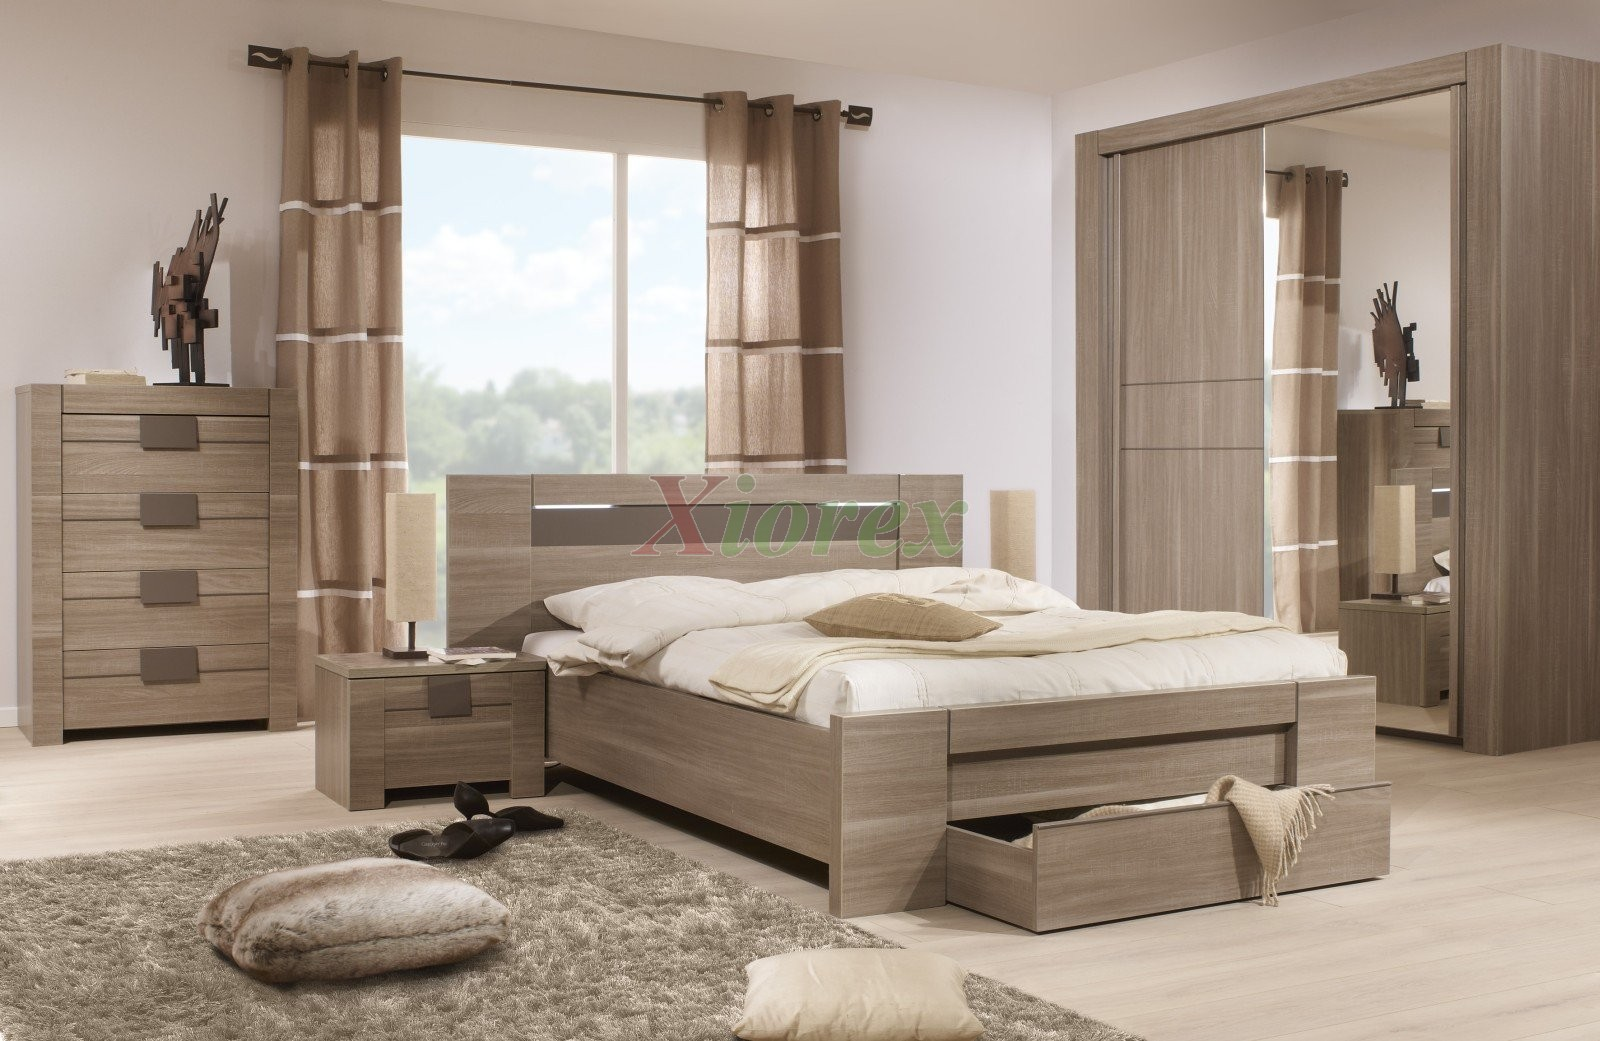 Master Bedroom Moka Beds Gami Moka Master Bedroom Sets by Gautier